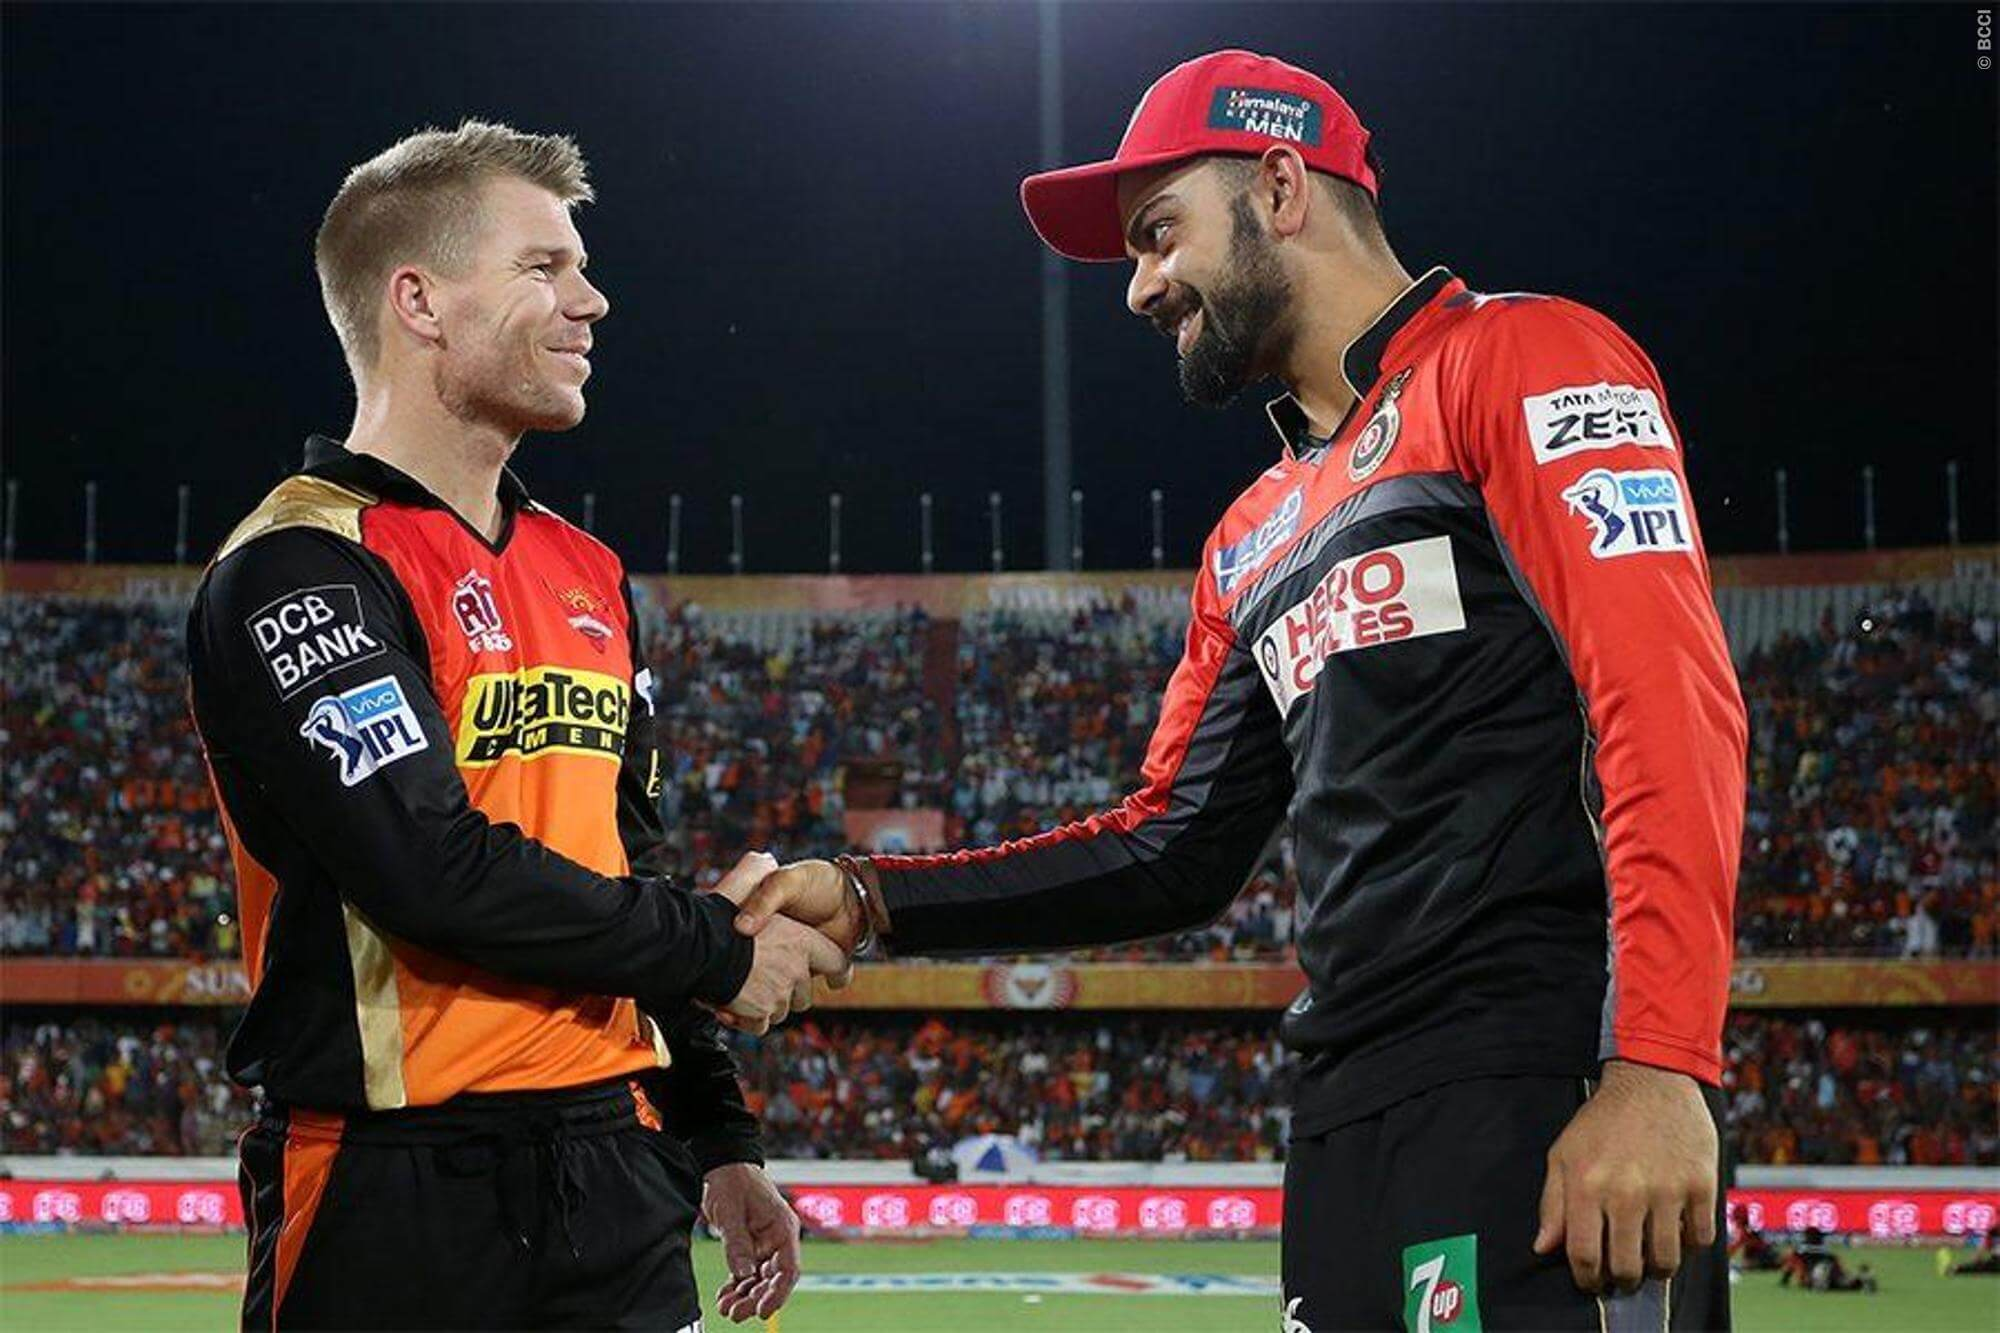 IPL 2020: RCB defeats 2016 Champions Sunrisers Hyderabad by 10 runs